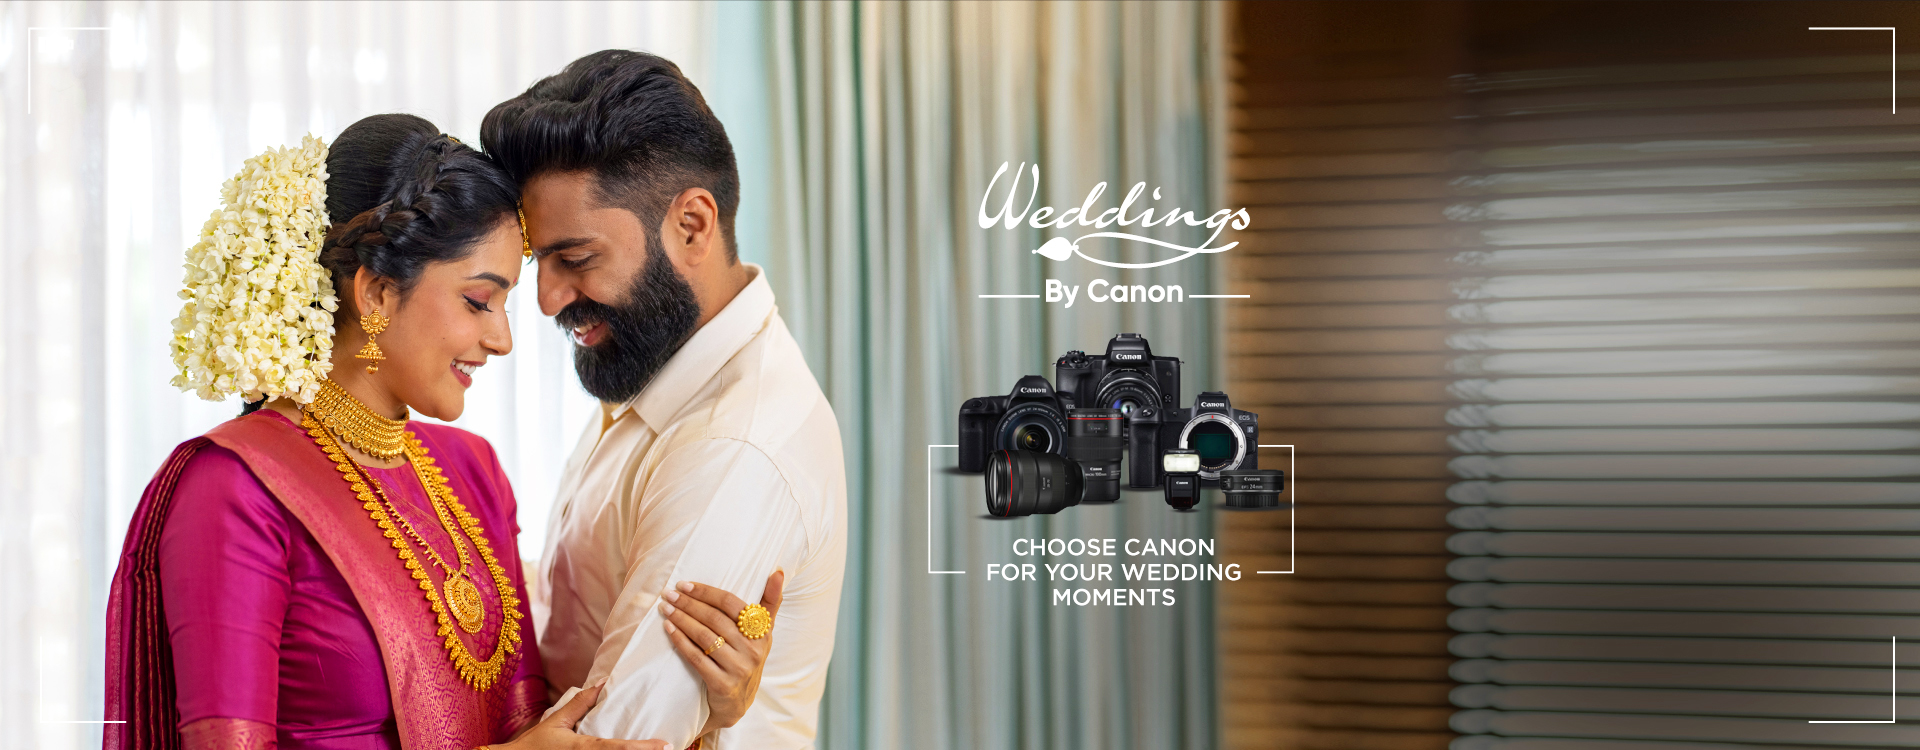 Weddings by Canon 2nd Banner